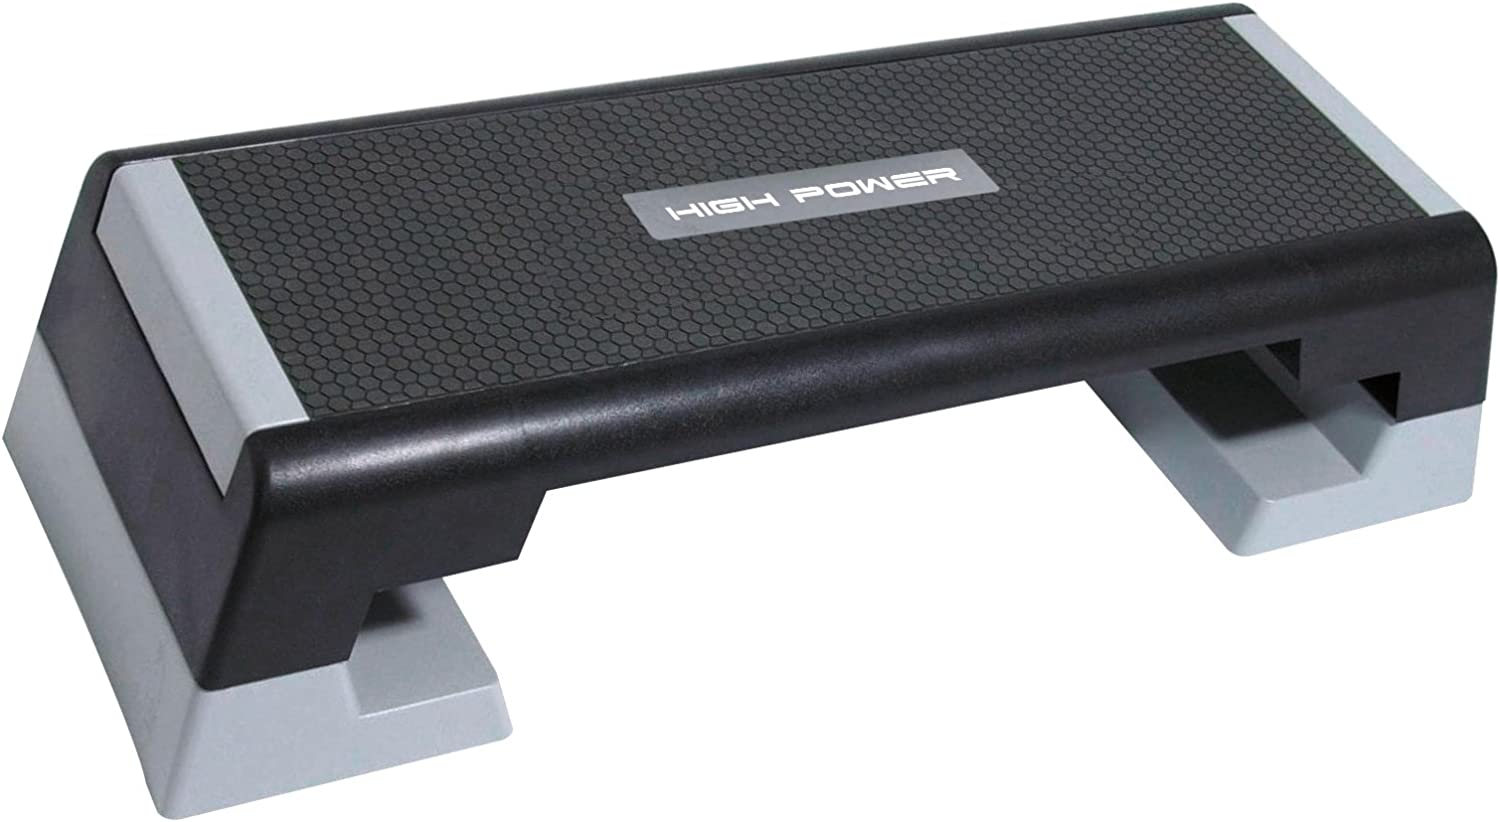 HIGH POWER Professional Aerobic Stepper, schwarz